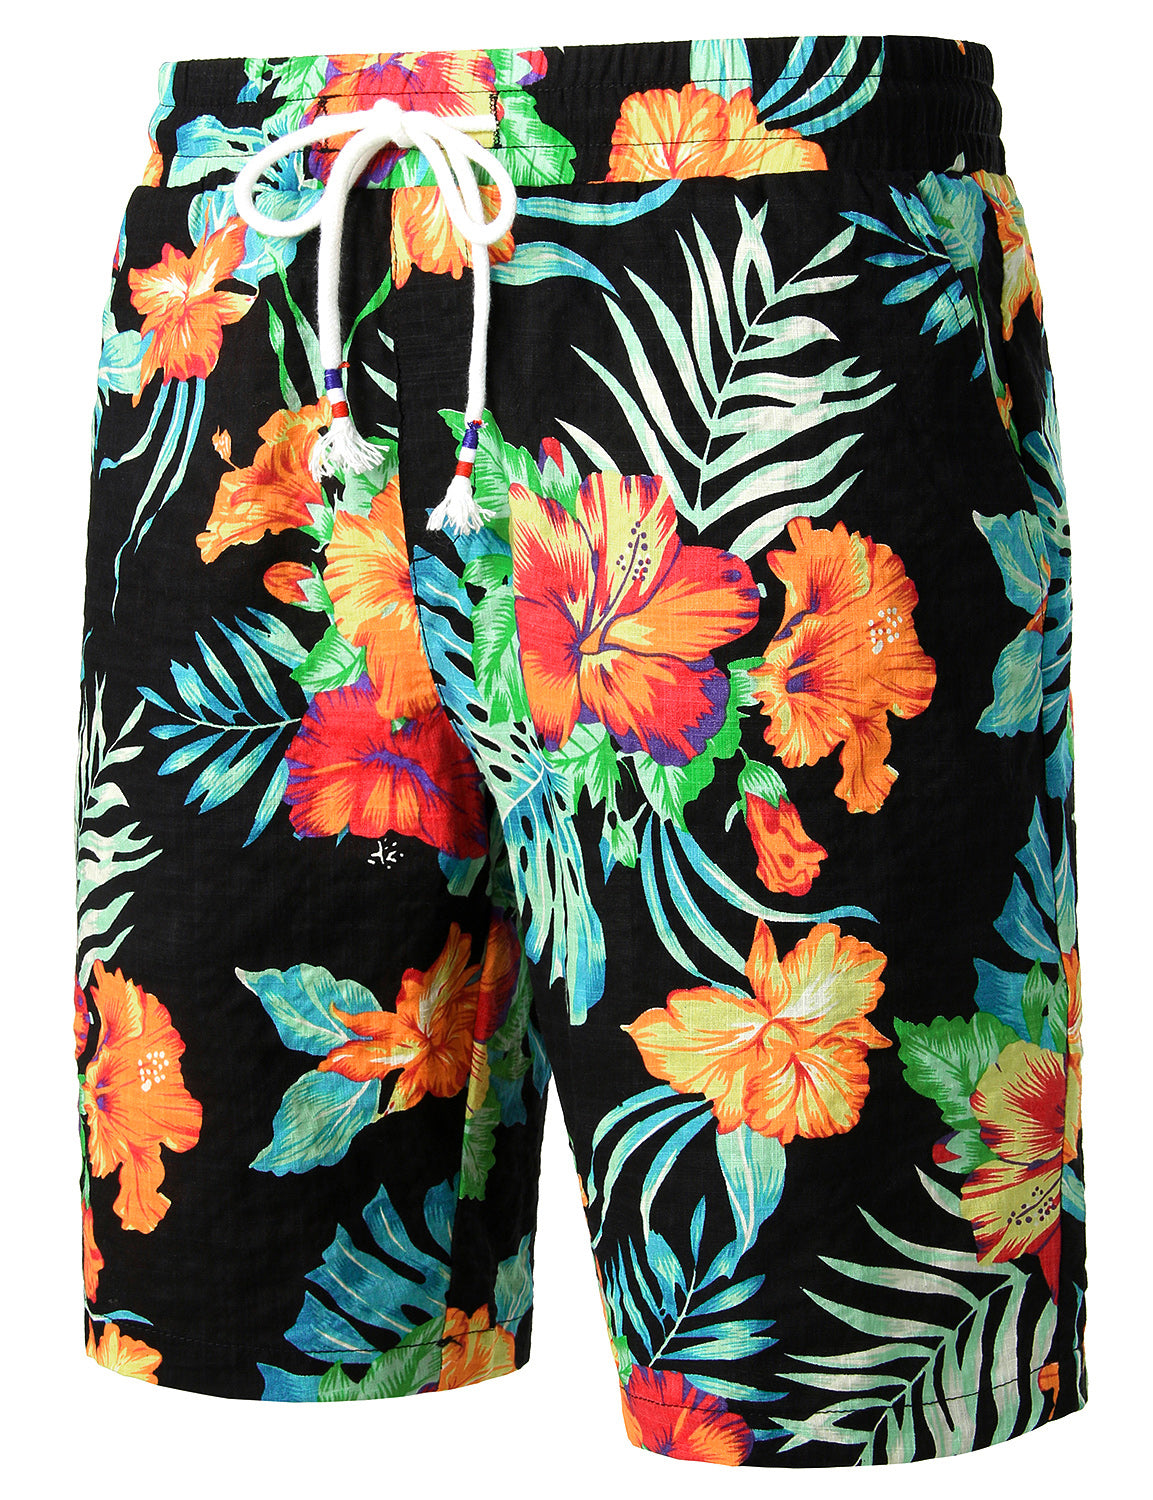 JOGAL Men's Flower Flat Front Casual Aloha Hawaiian Shorts